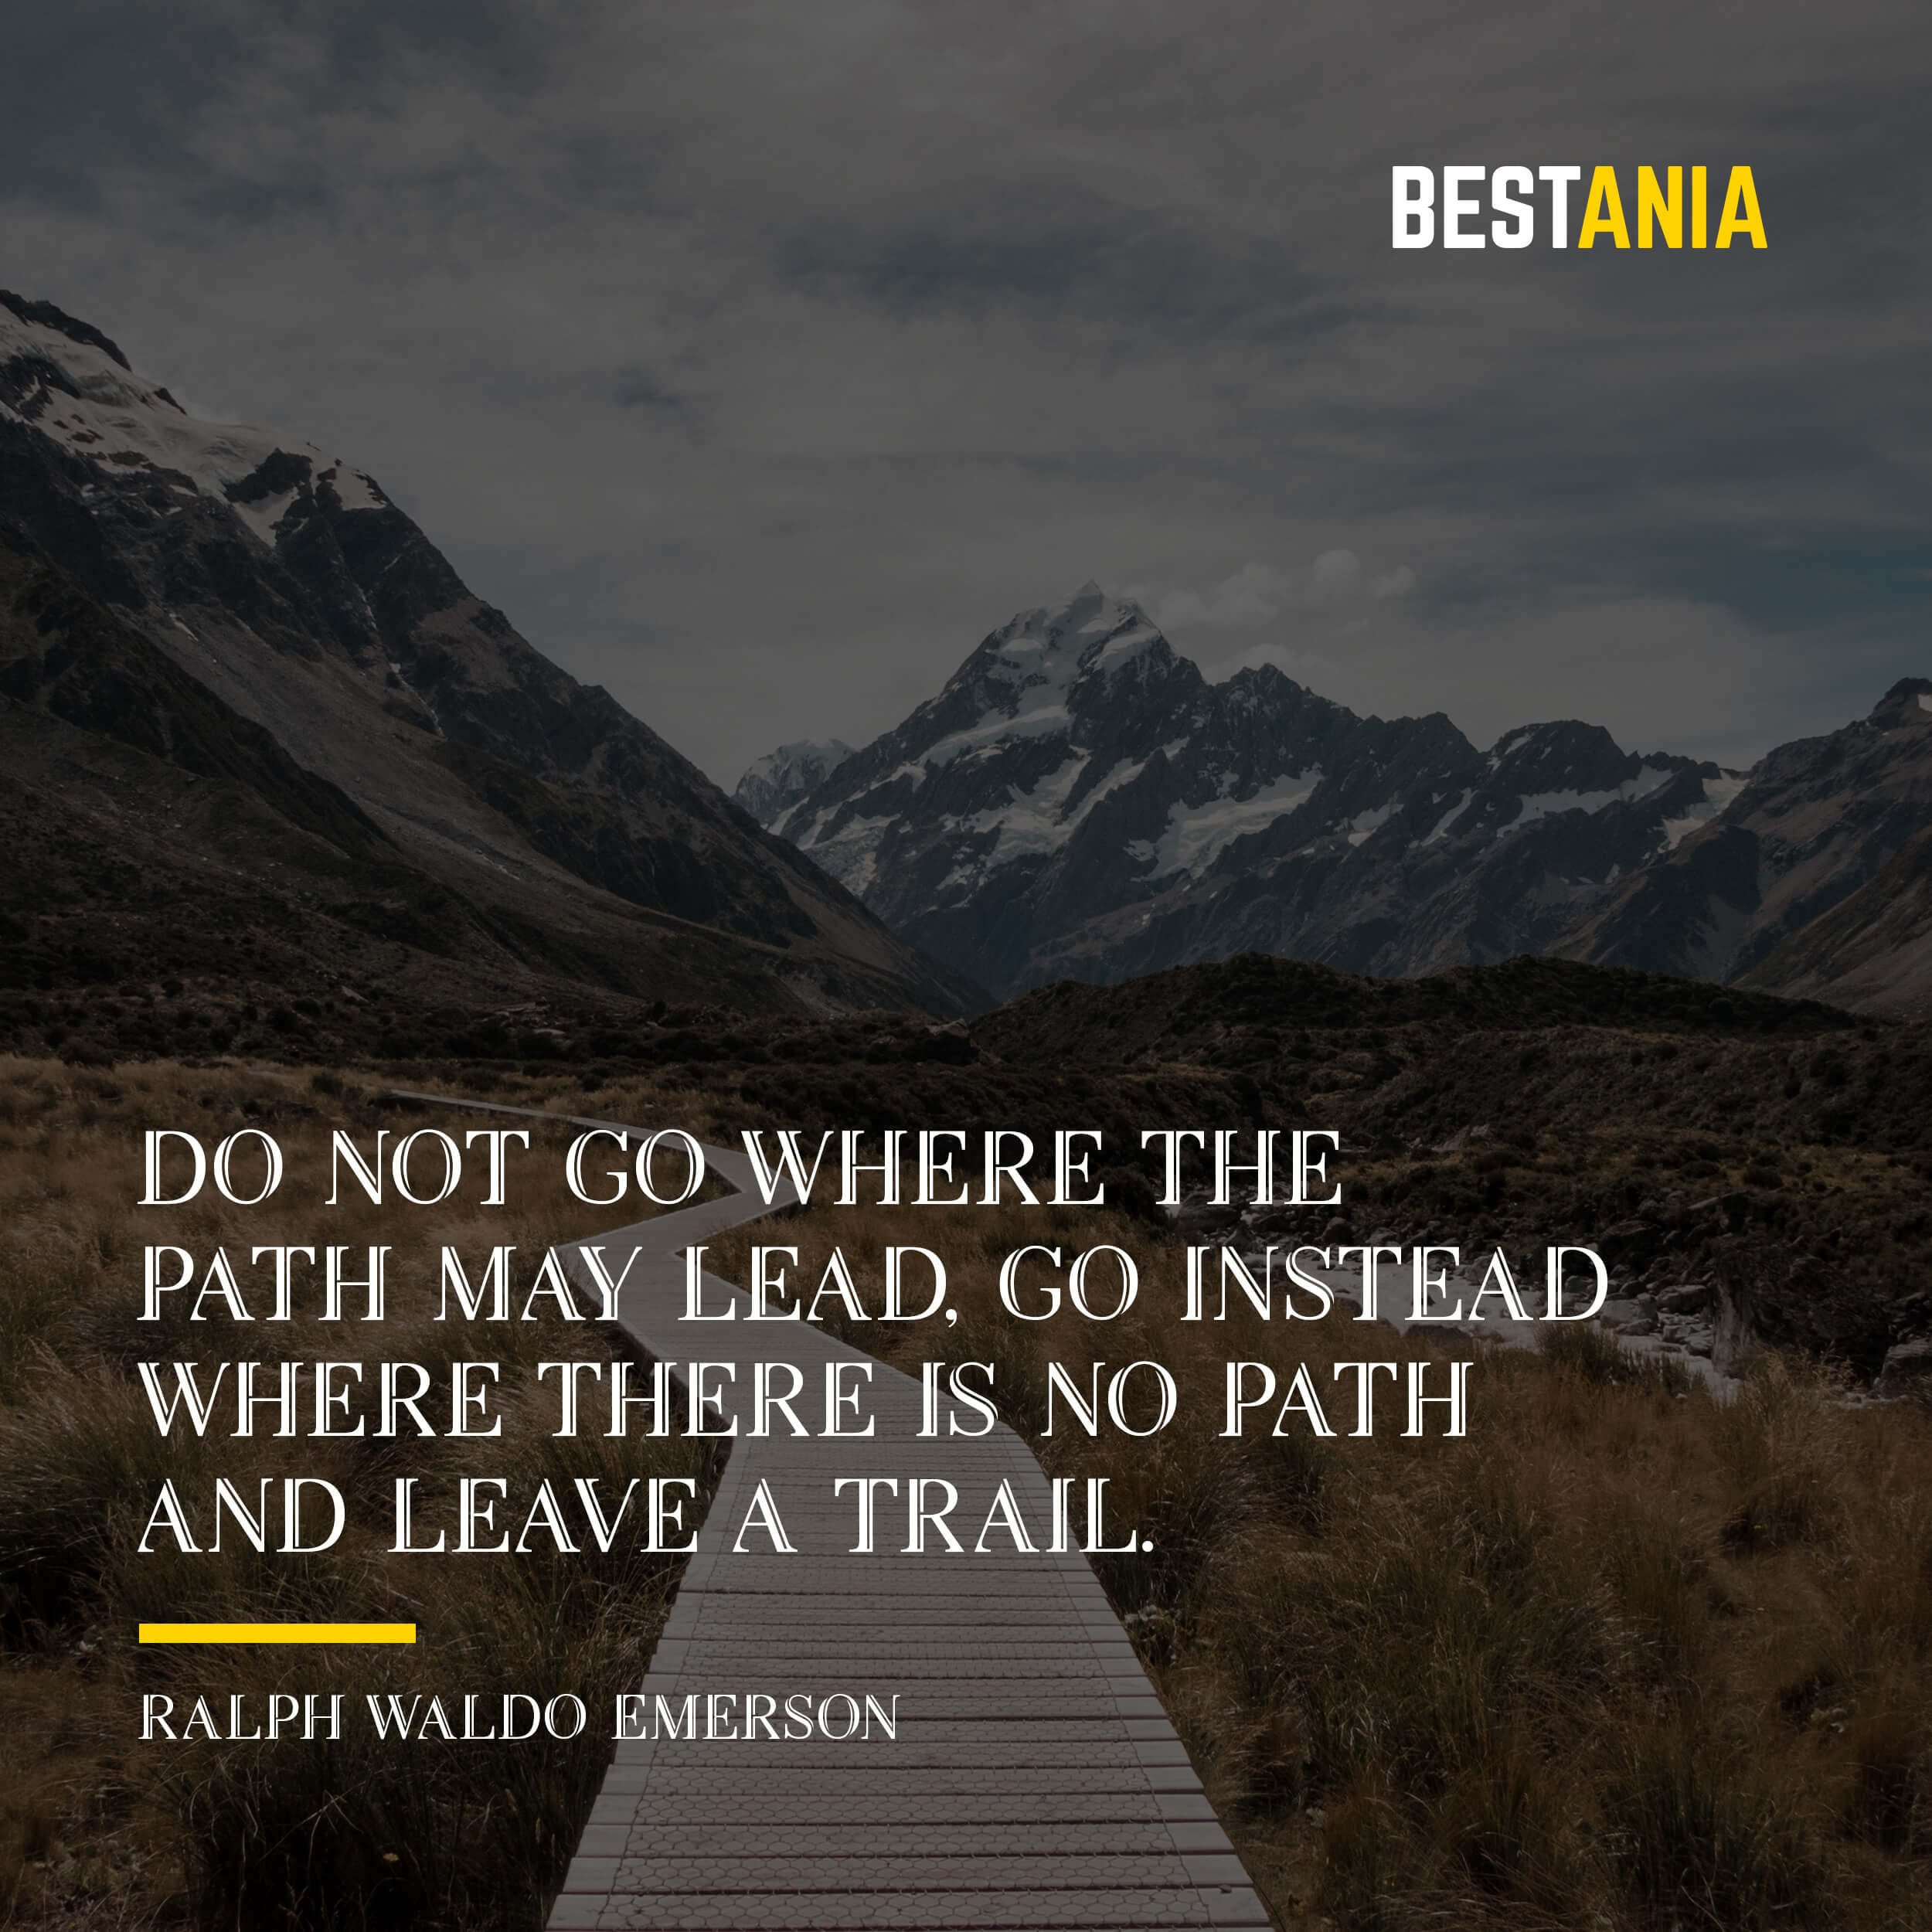 """DO NOT GO WHERE THE PATH MAY LEAD, GO INSTEAD WHERE THERE IS NO PATH AND LEAVE A TRAIL."" RALPH WALDO EMERSON"